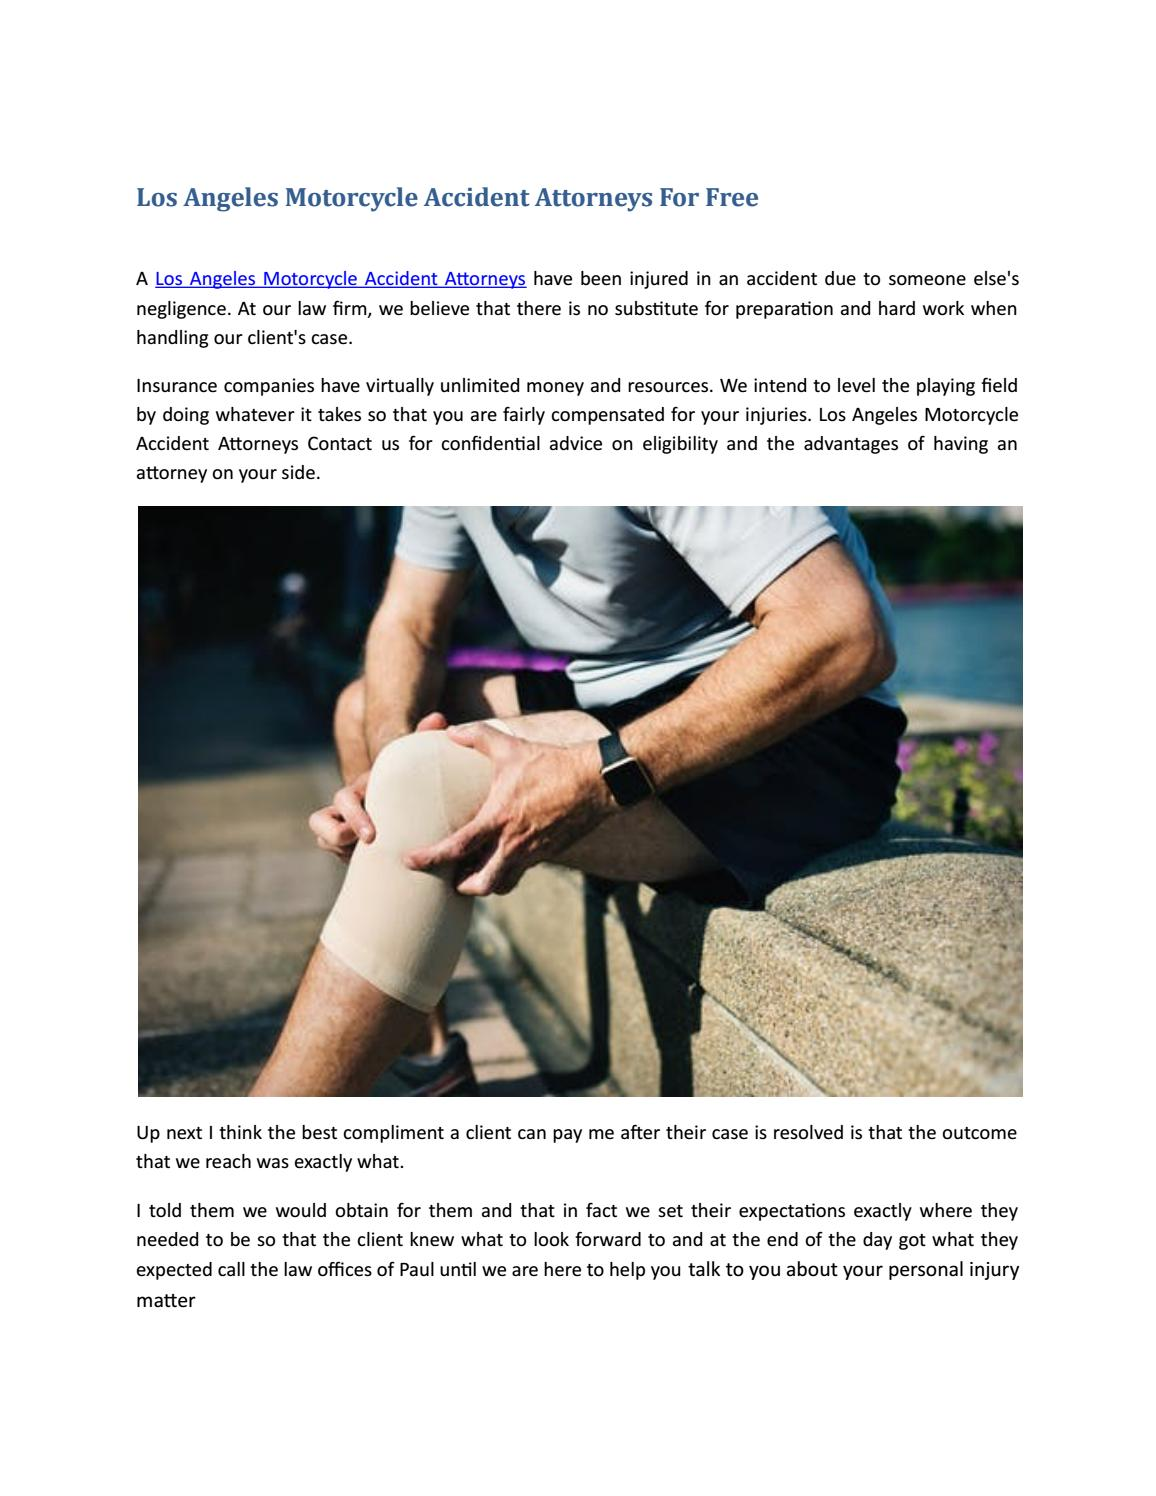 Los Angeles Motorcycle Accident Attorneys For Free by West